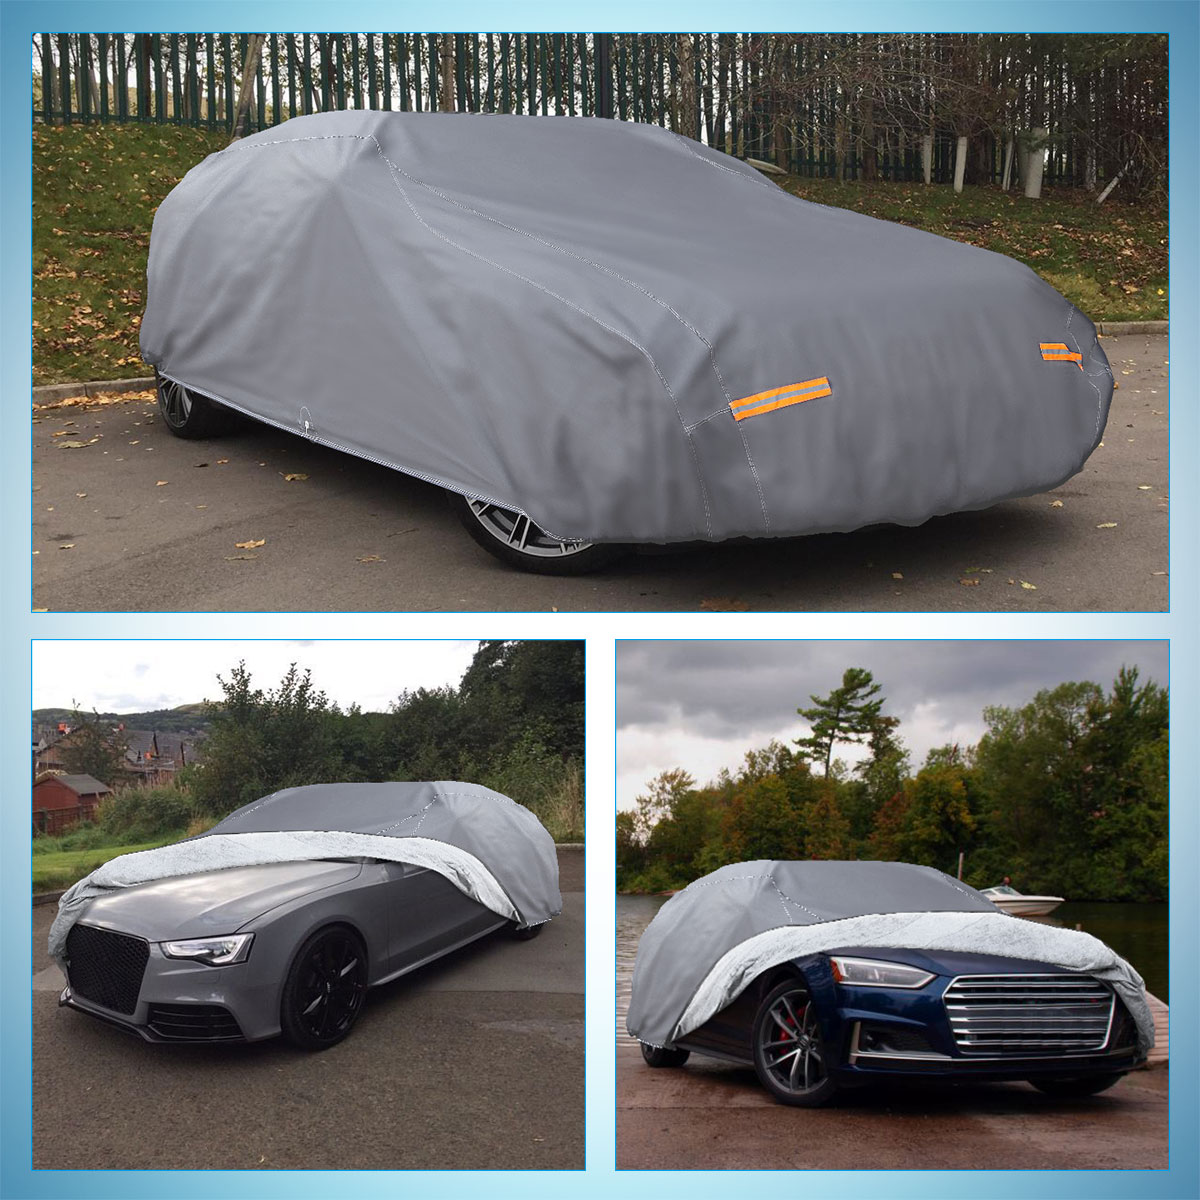 Maserati Ghibli 2014 ON PREMIUM LUXURY FULLY WATERPROOF CAR COVER COTTON LINED HEAVY DUTY INDOOR OUTDOOR HIGH QUALITY